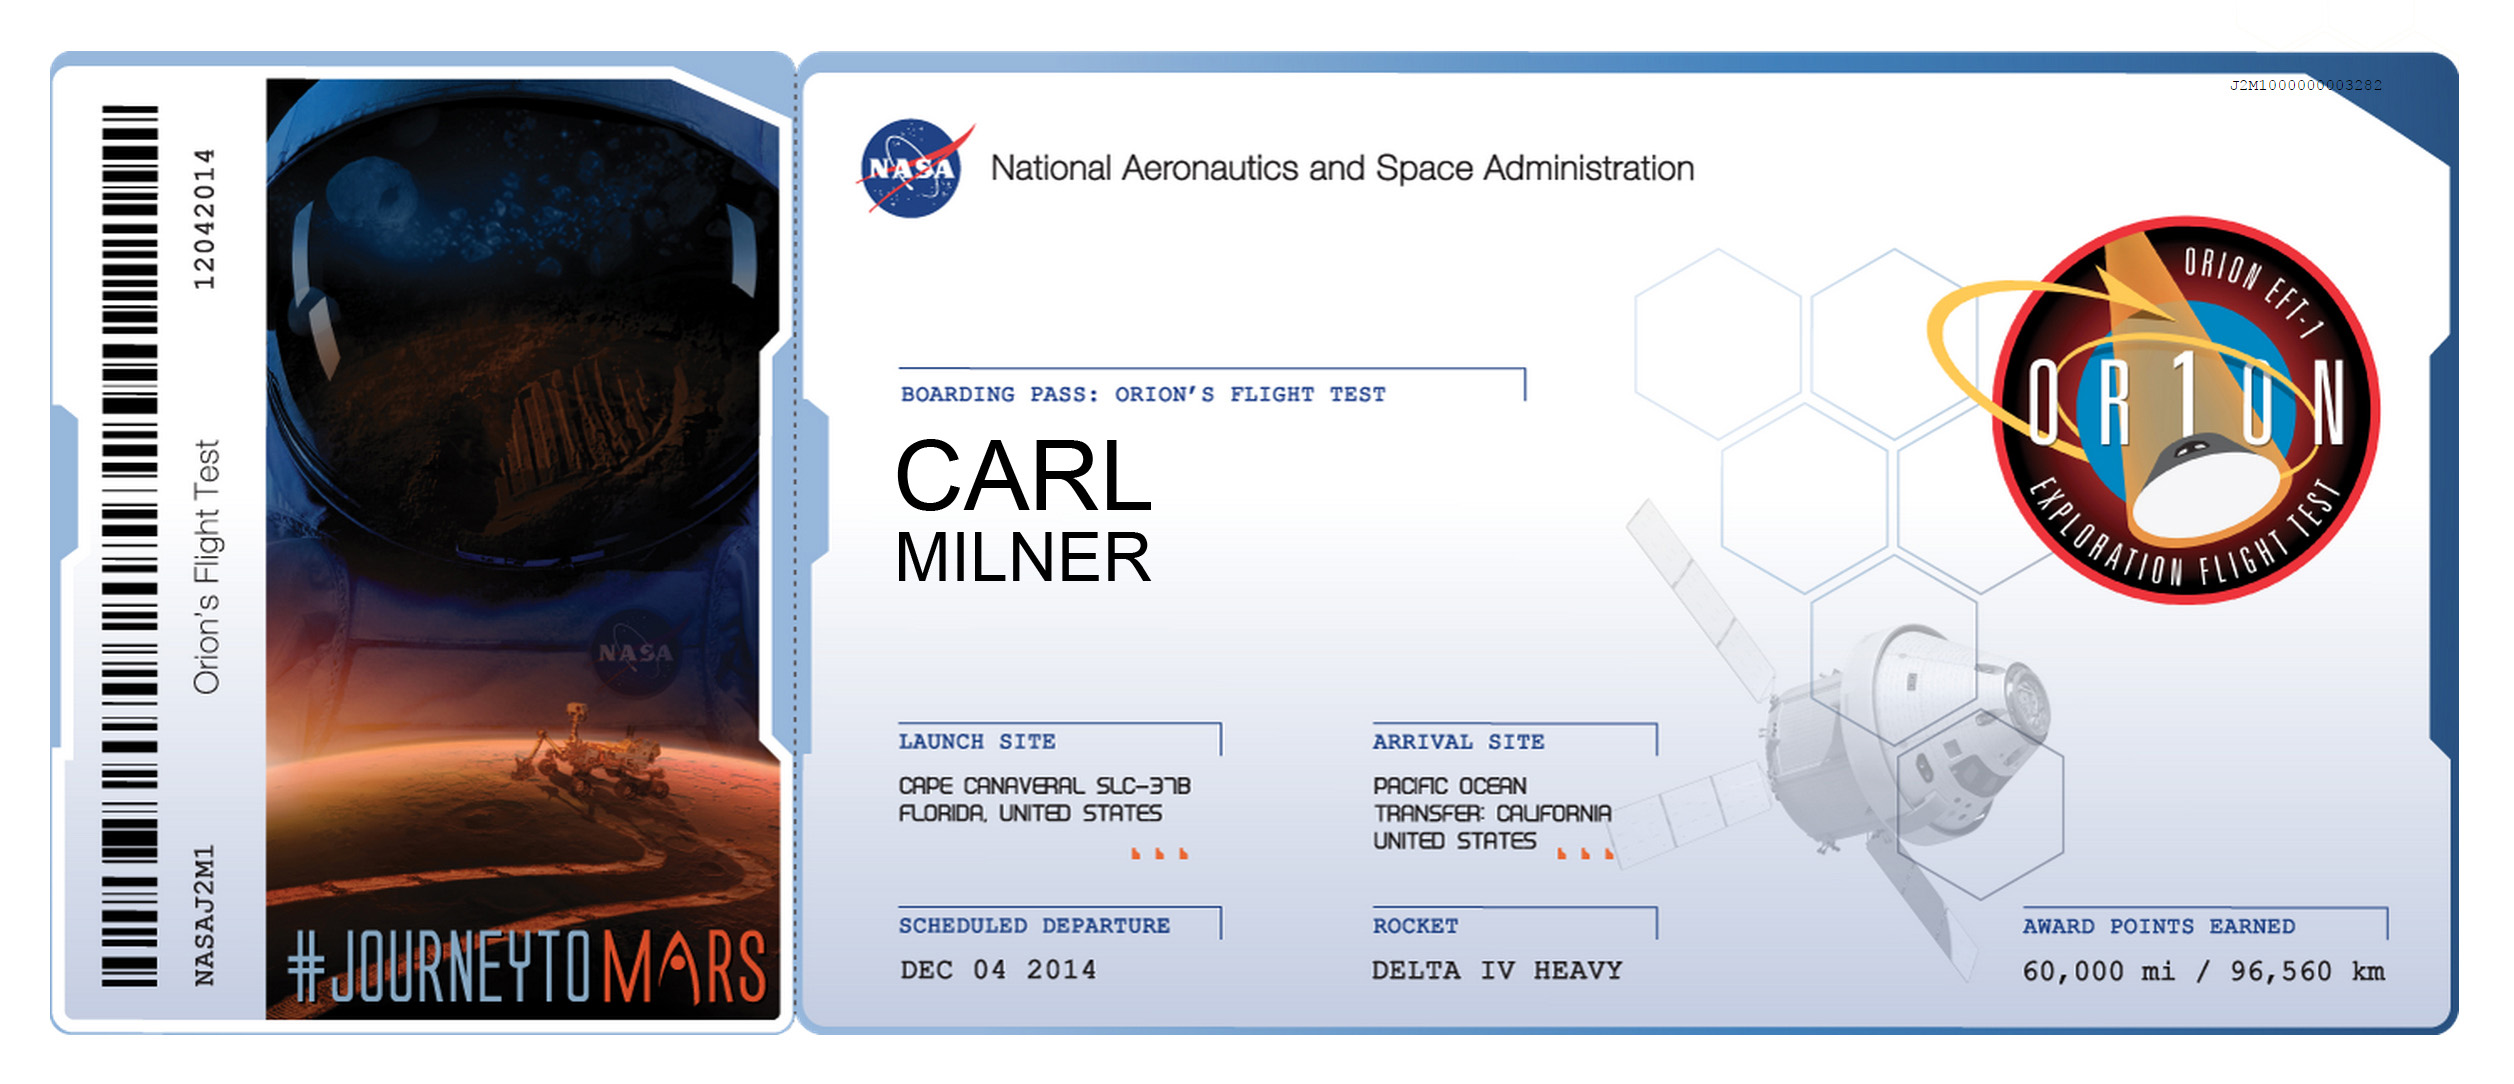 Orion Flight Test Name In Space Journey To Mars Carl Milner